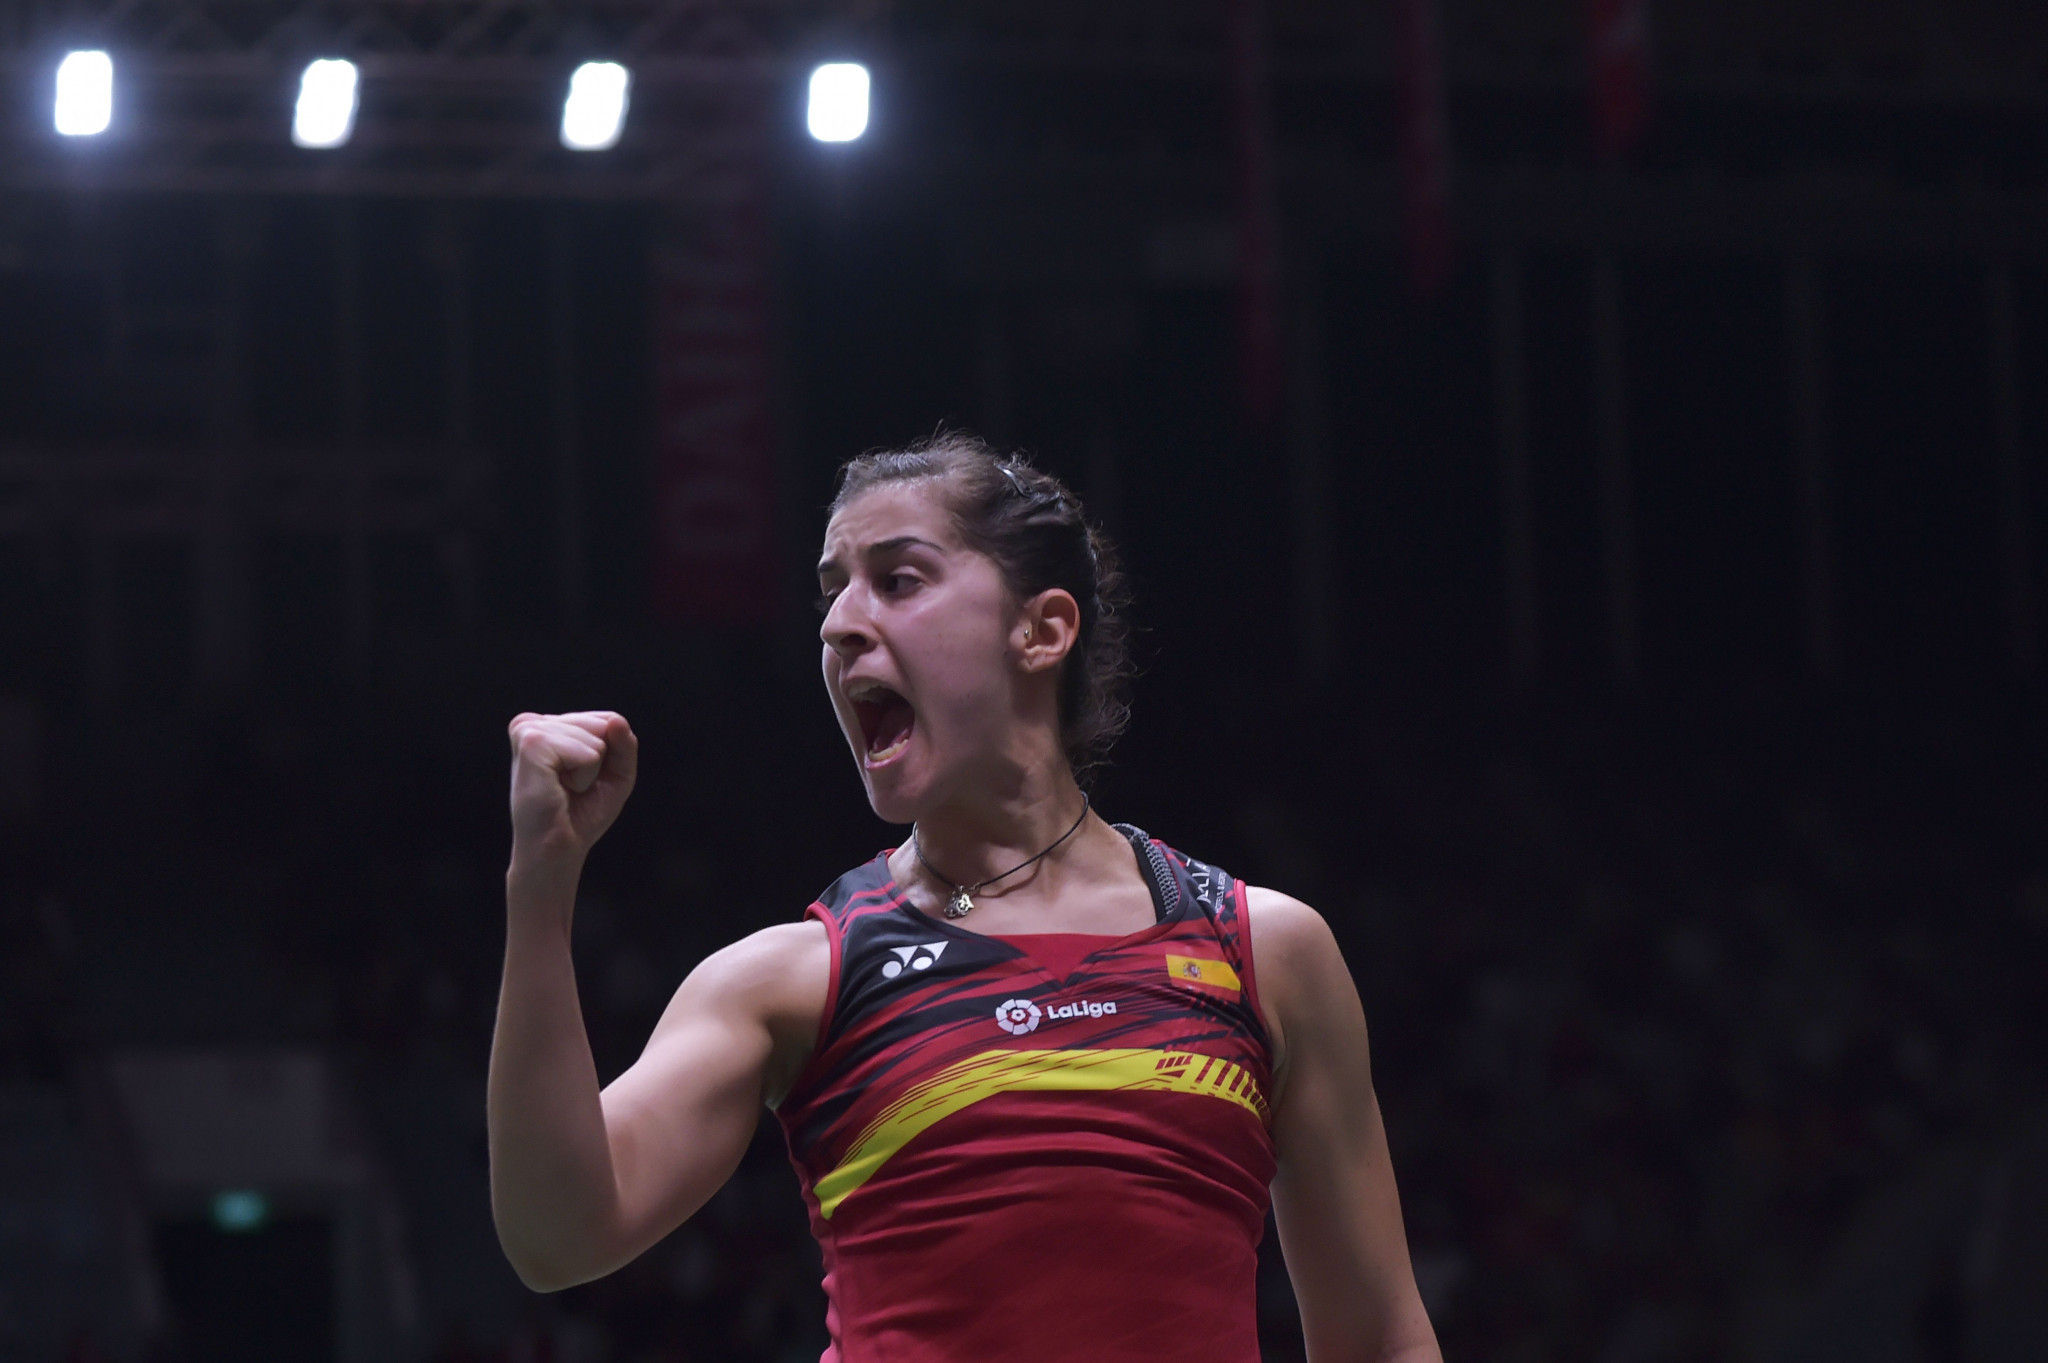 Top seed Carolina Marín is through to the final of the women's singles event at the European Badminton Championships at a venue in Huelva named after her ©Getty Images